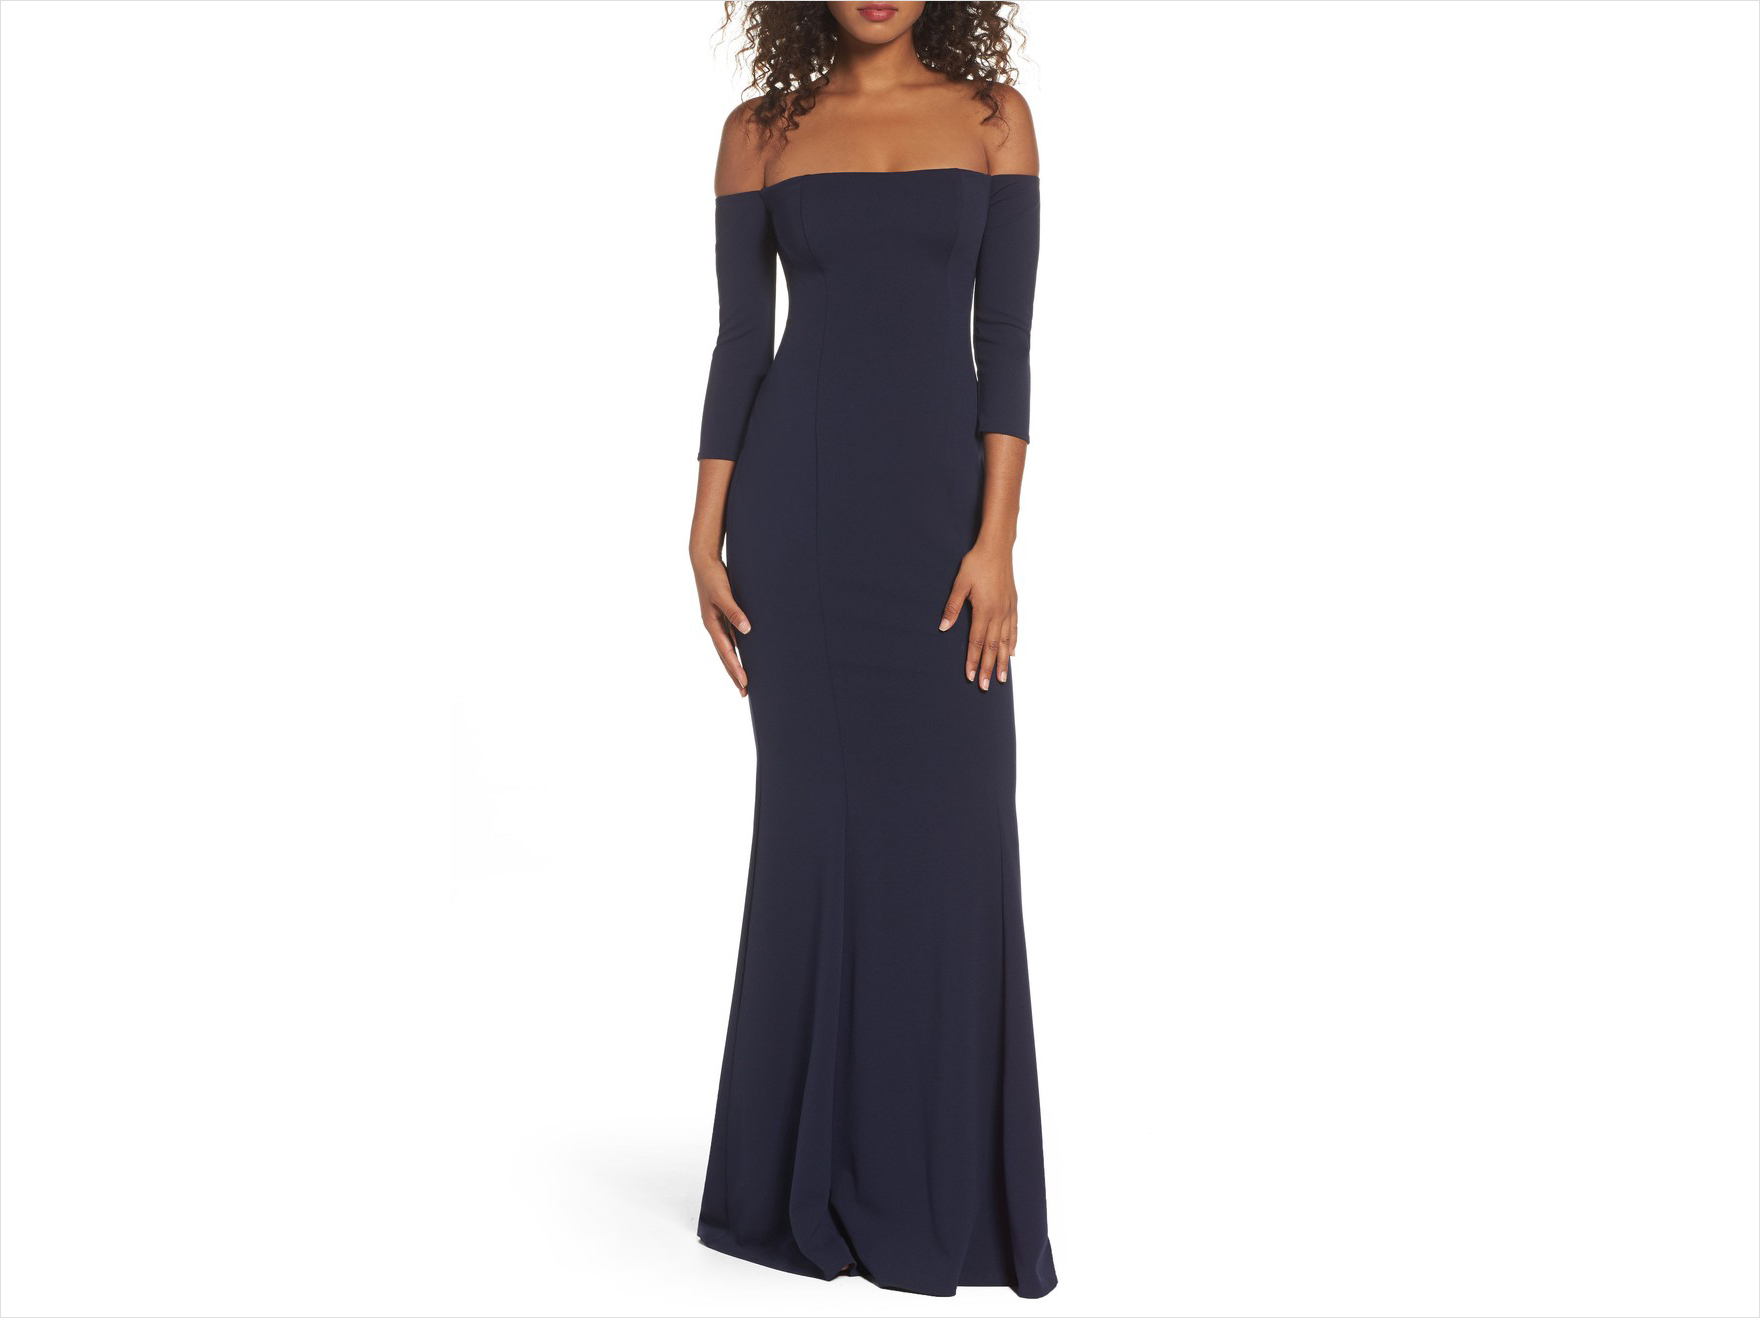 Three quarter sleeve off shoulder wedding guest dress idea navy Katie May Nordstrom